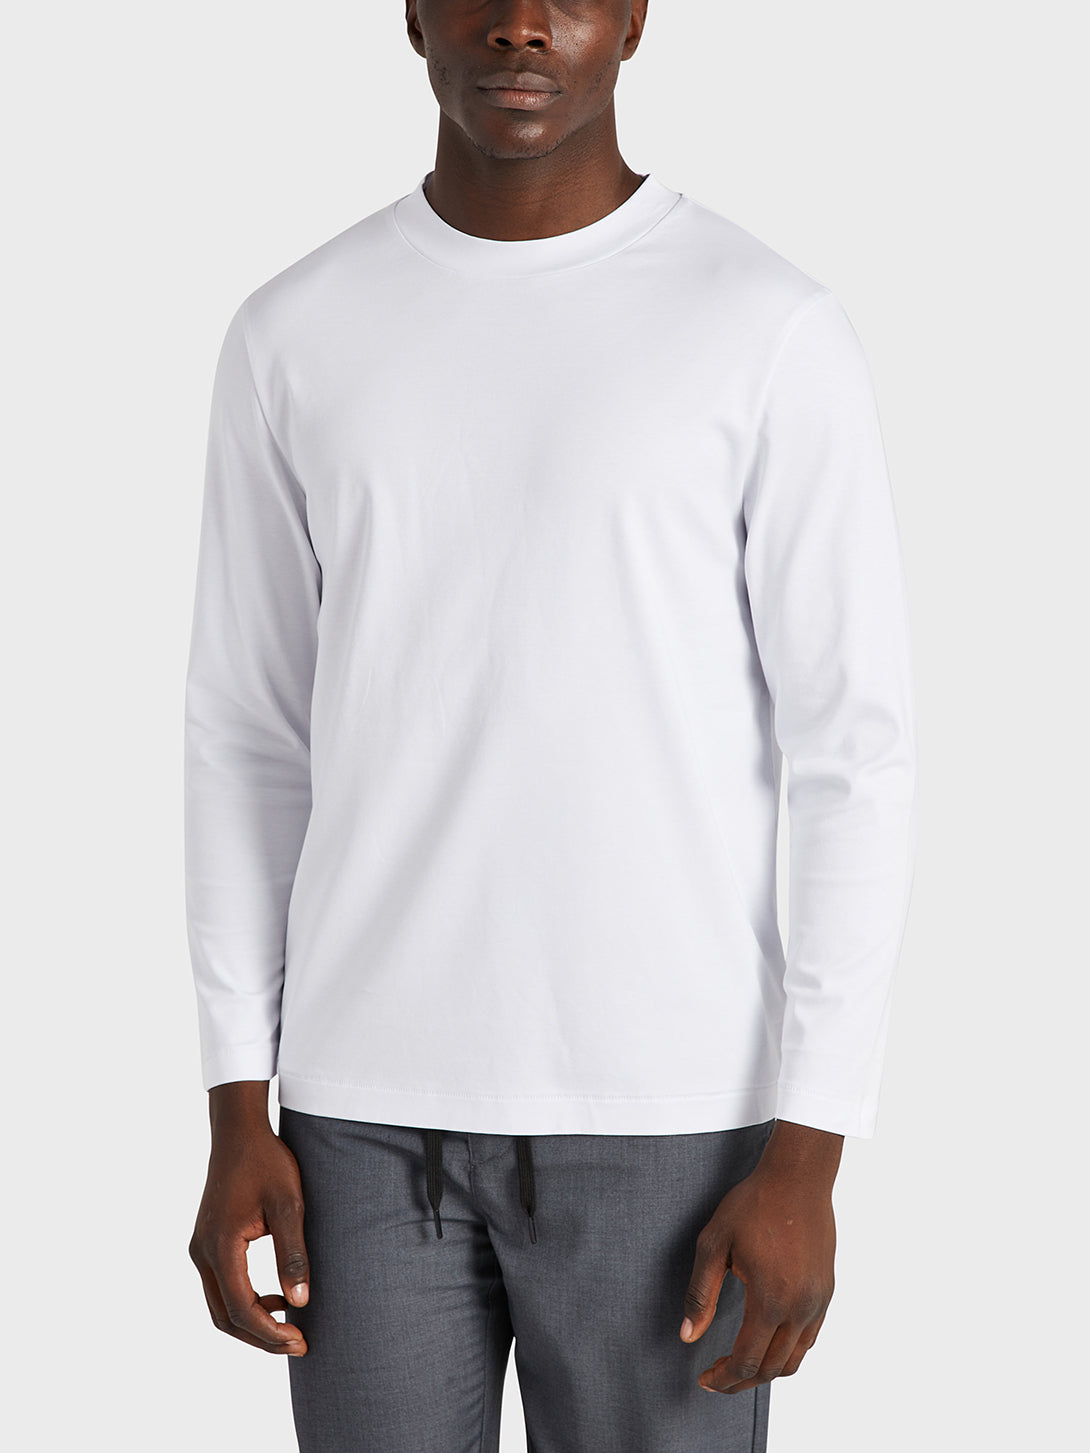 ONS Clothing Men's MASCOT TEE in WHITE black friday deals